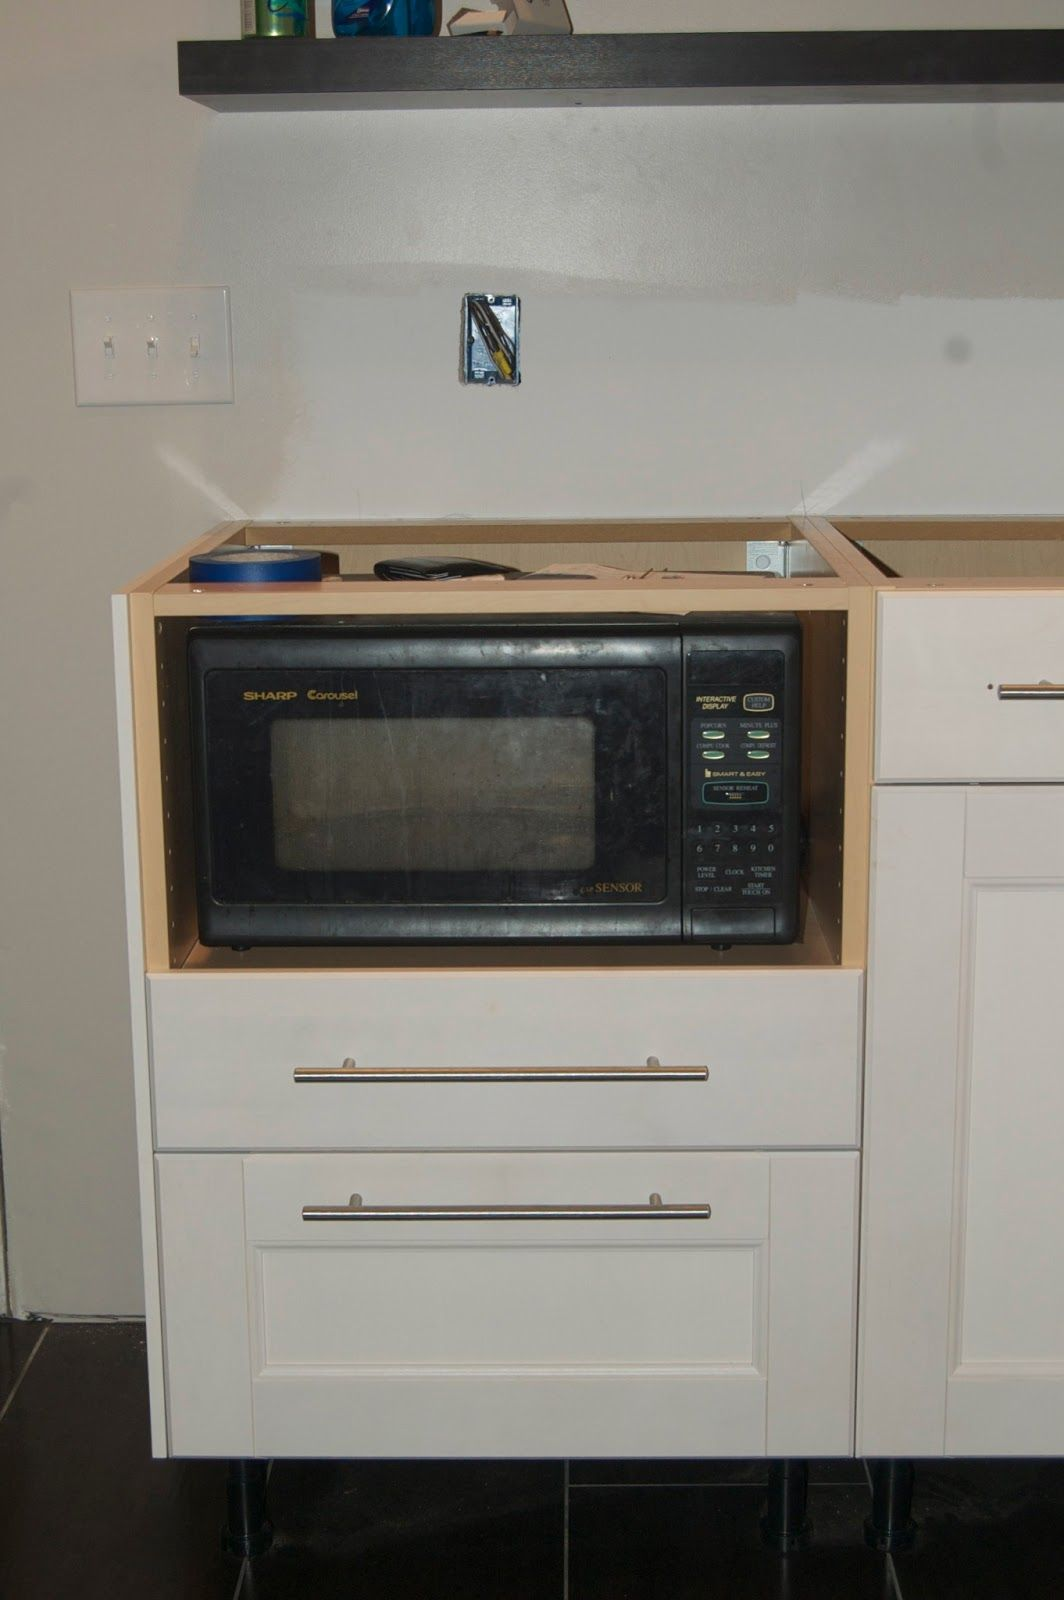 24 cabinet to fit microwave